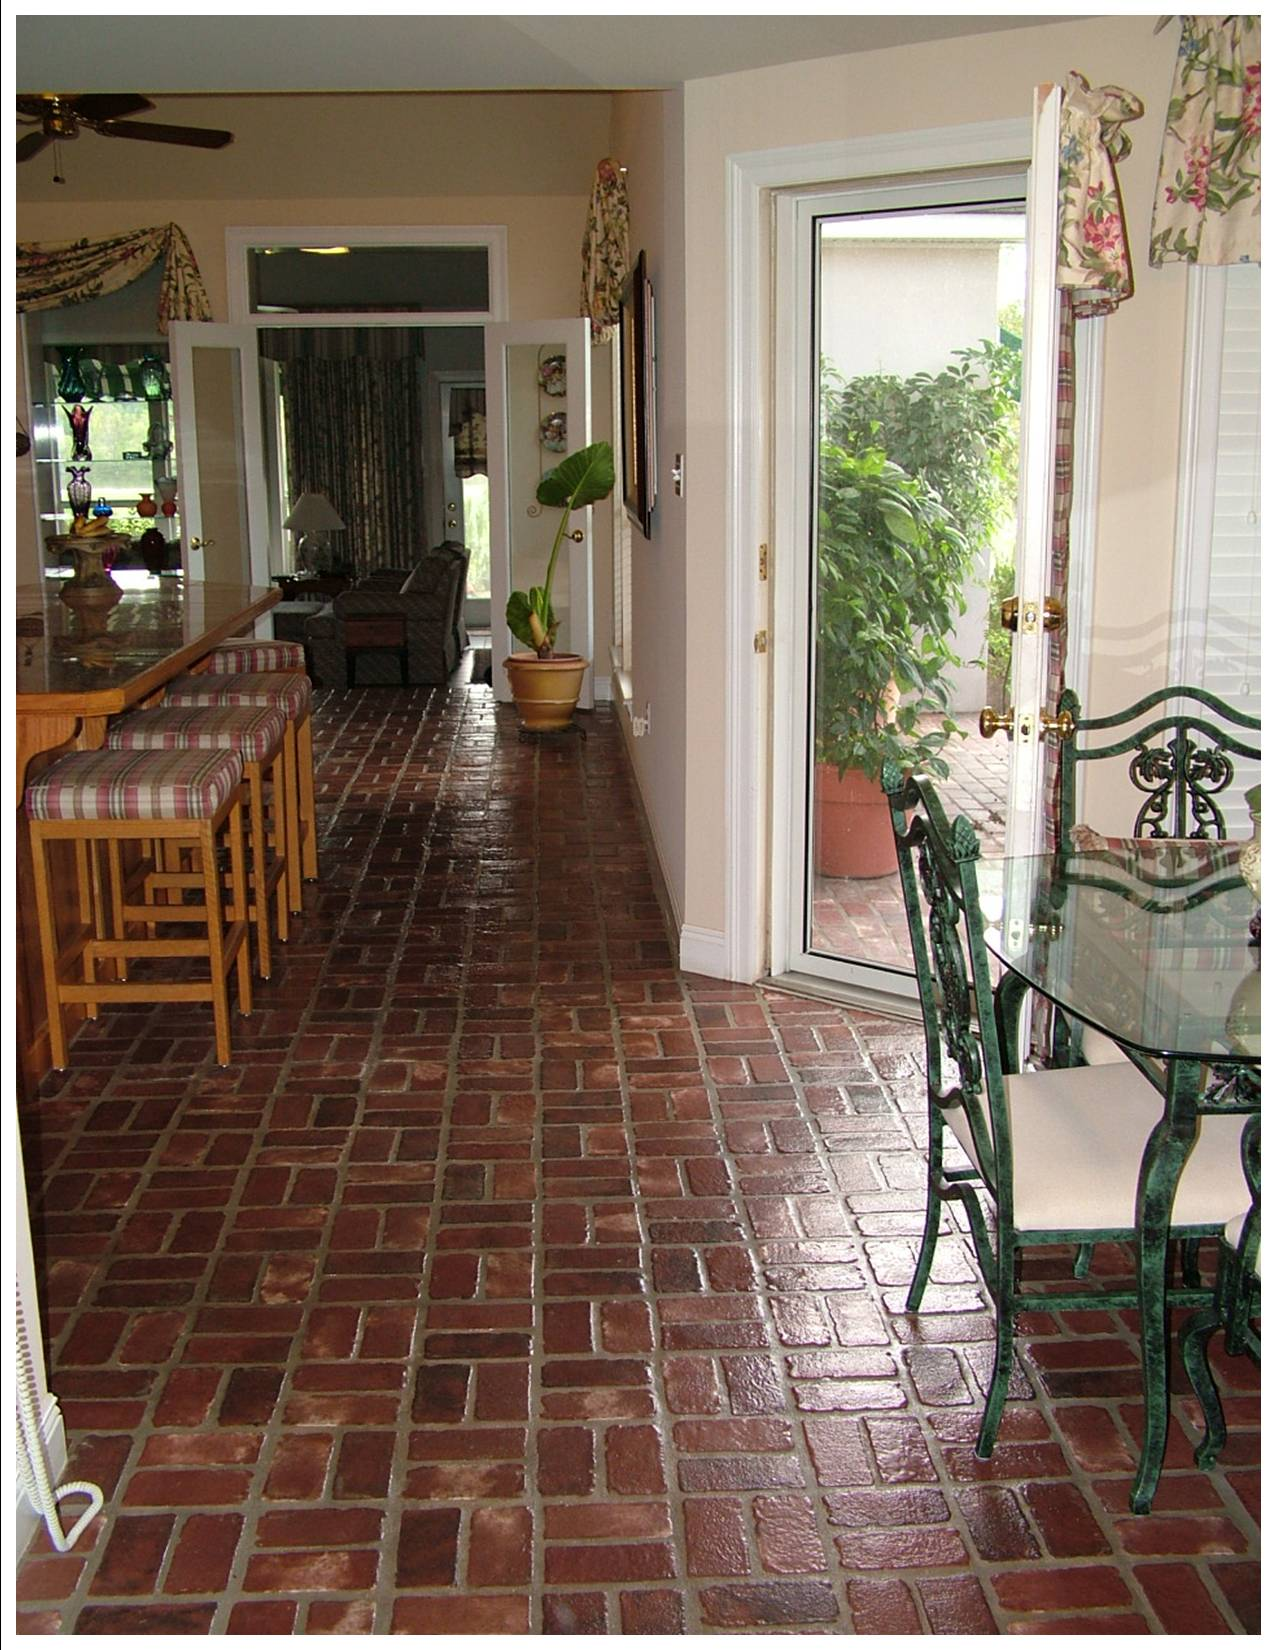 Home - Magnolia Brick Pavers, Inc.